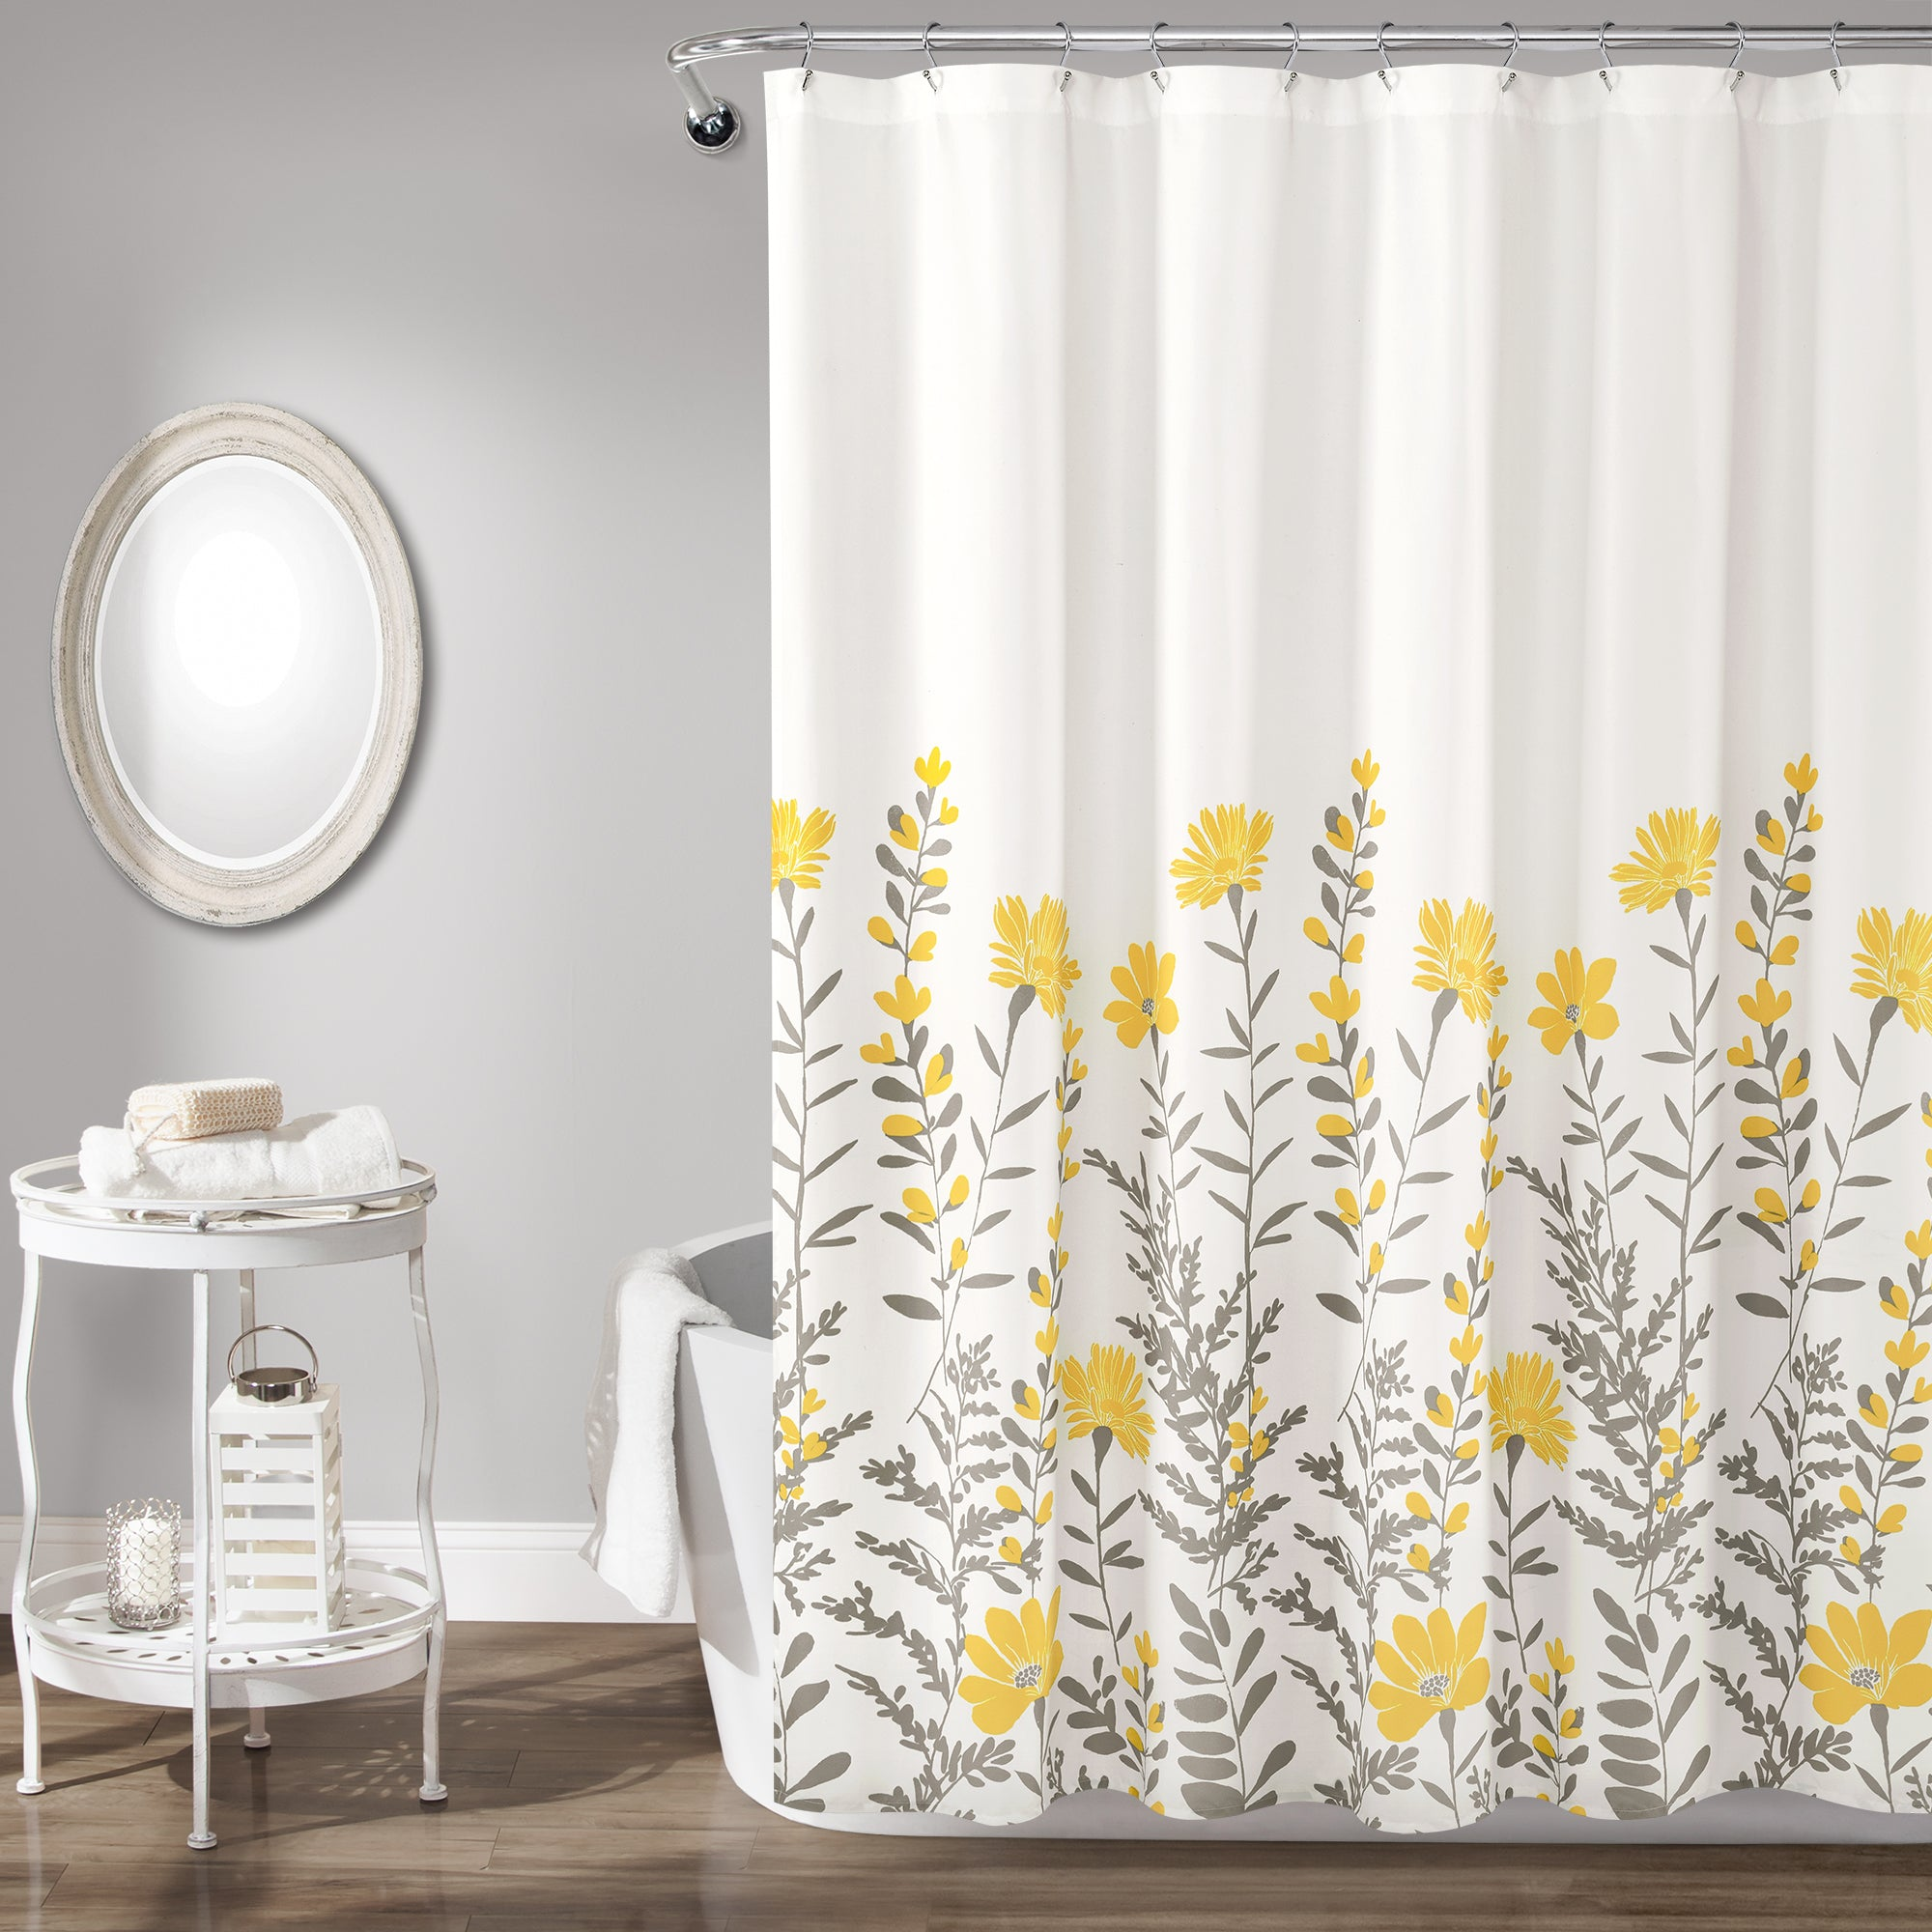 Chic Shower Curtains Lush Decor Www Lushdecor Com Lushdecor